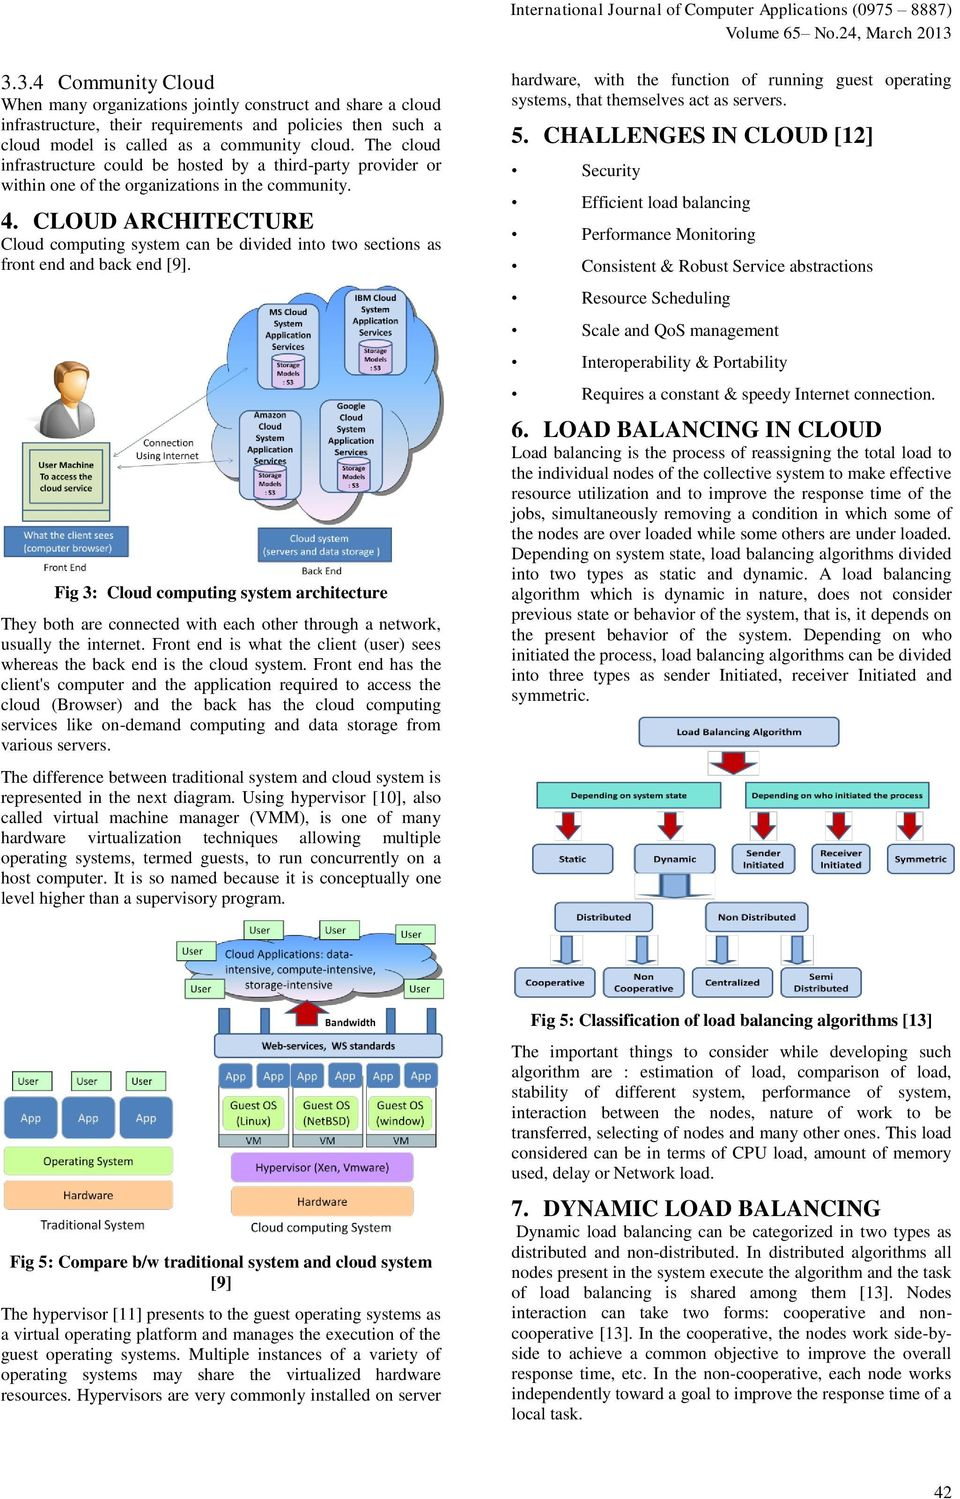 CLOUD ARCHITECTURE Cloud computing system can be divided into two sections as front end and back end [9].